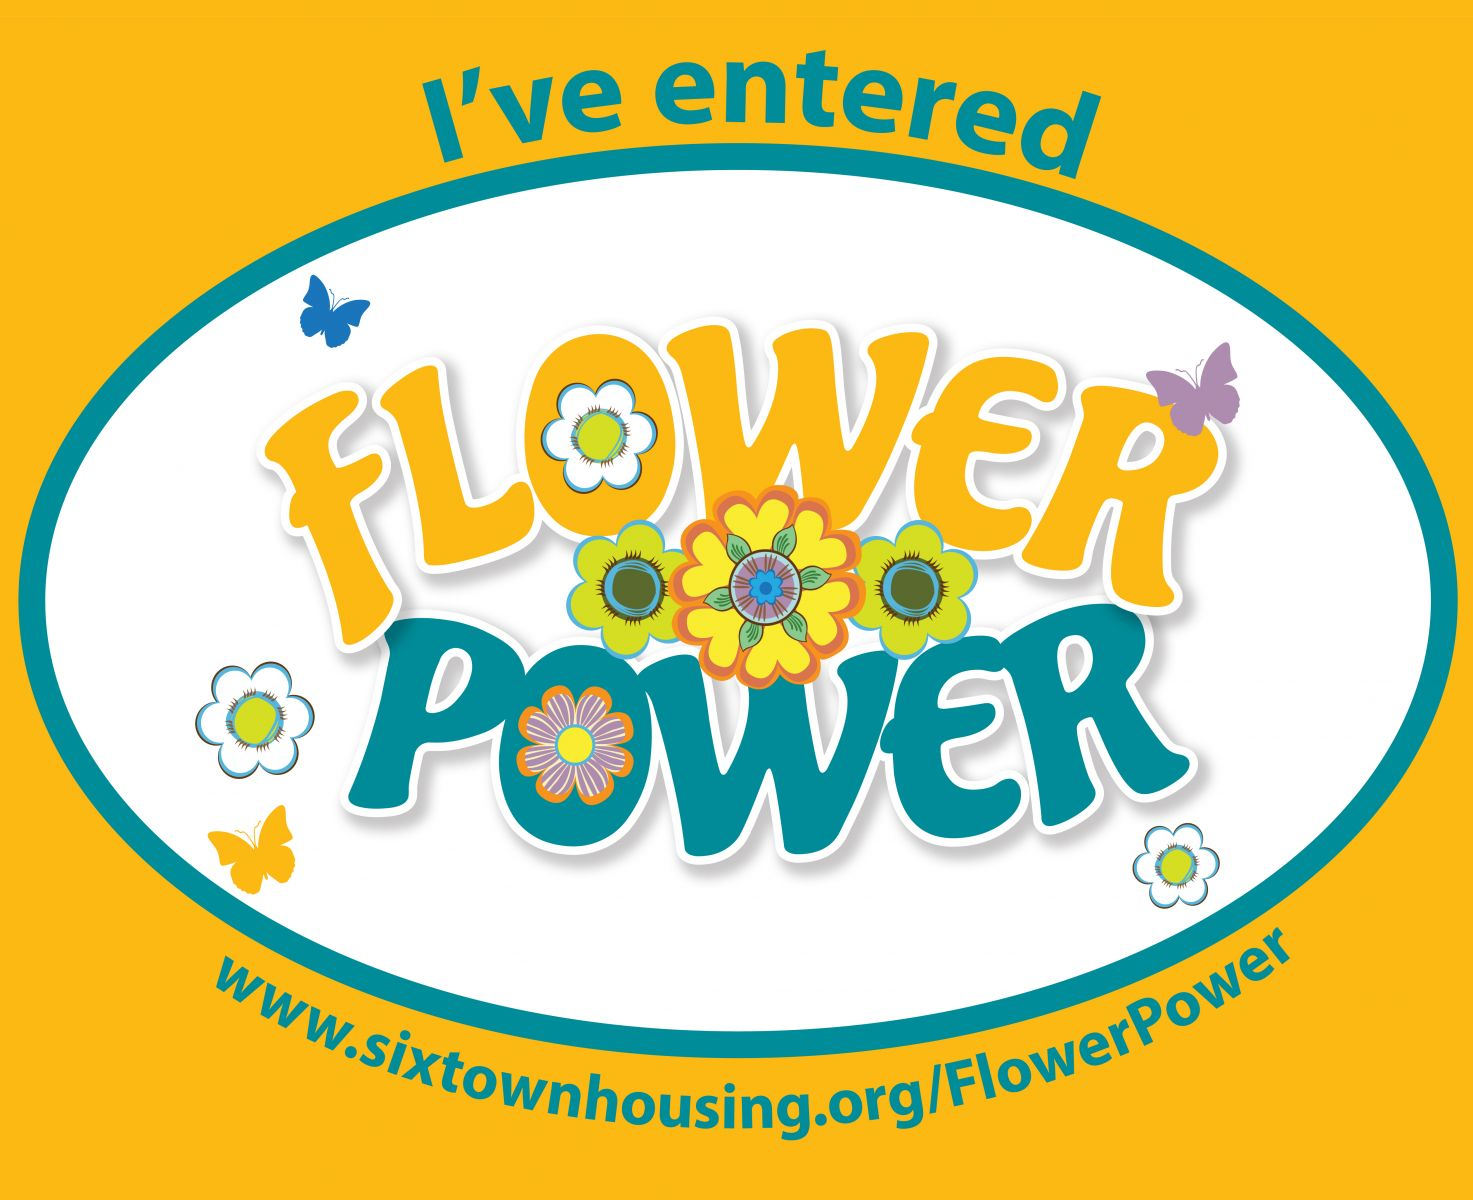 I've entered Six Town Housing's Flower Power gardening competition